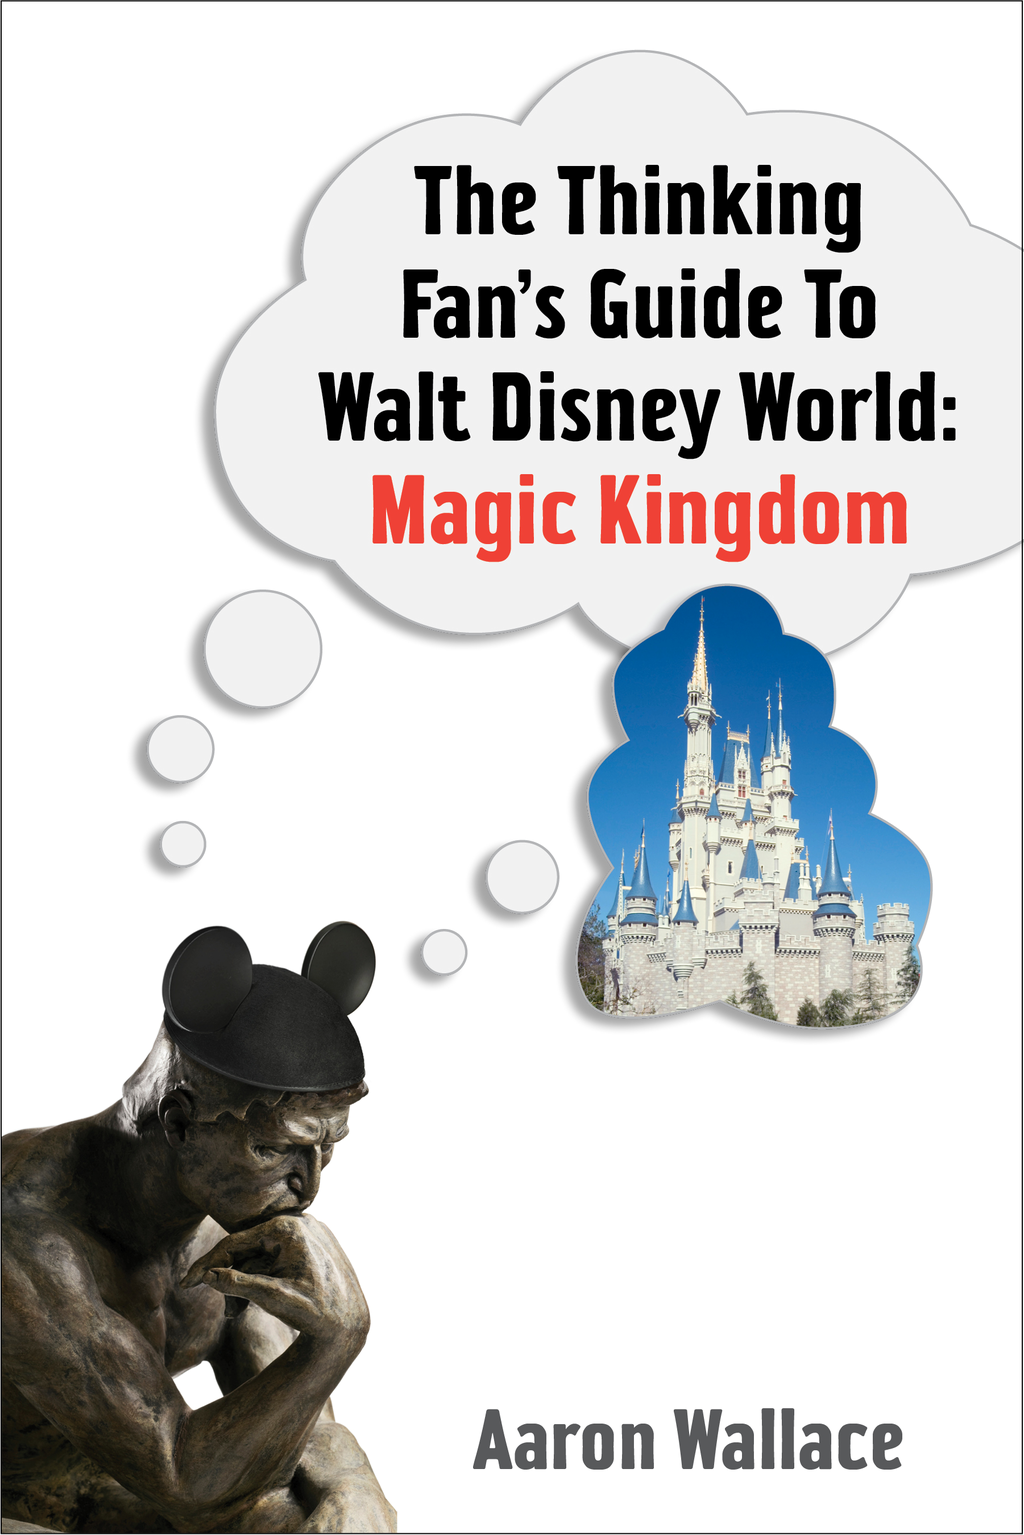 The Thinking Fan's Guide to Walt Disney World